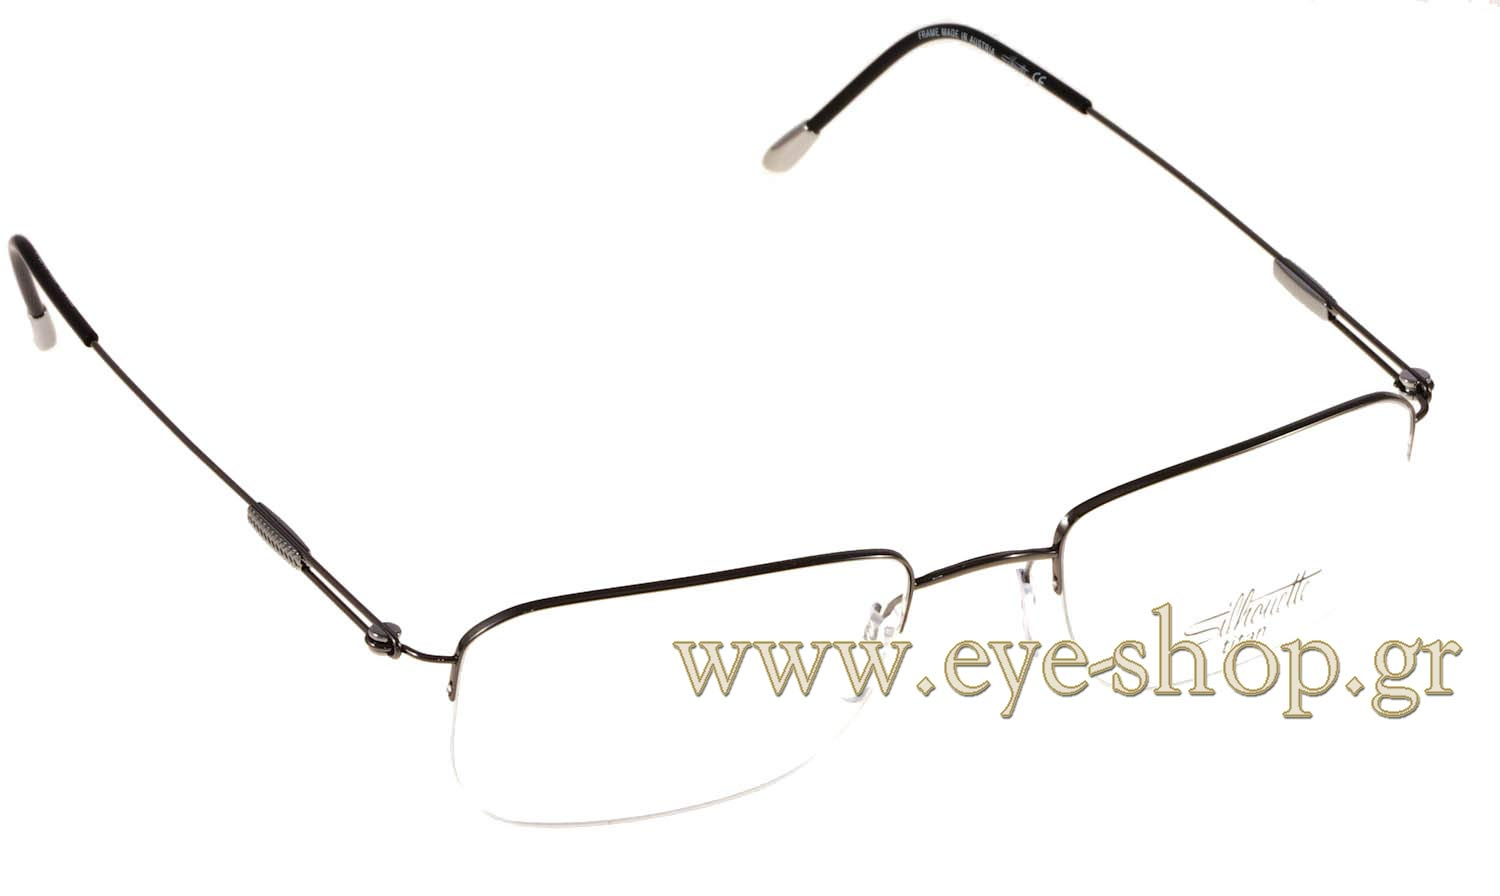 Silhouette Glasses Frame Parts : Eyewear Silhouette 7584 6055 Men Eye-Shop